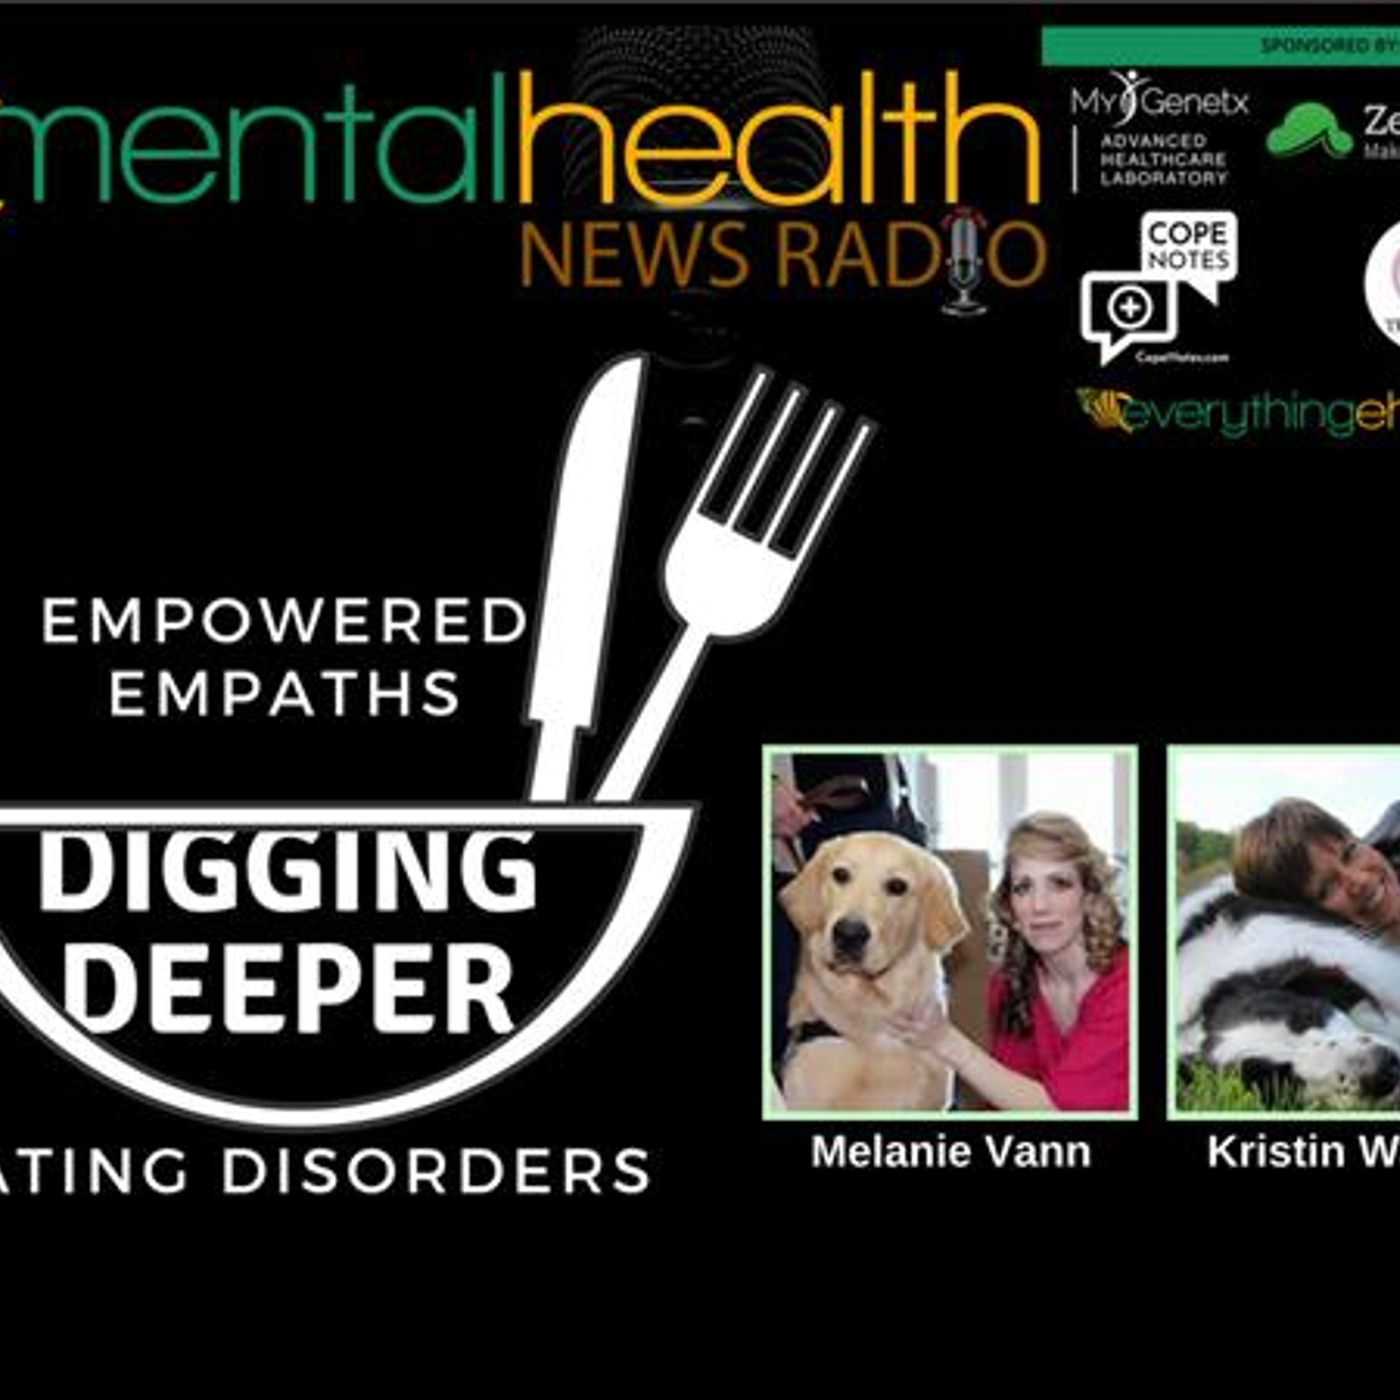 Mental Health News Radio - Empowered Empaths: Digging Deeper Into Eating Disorders